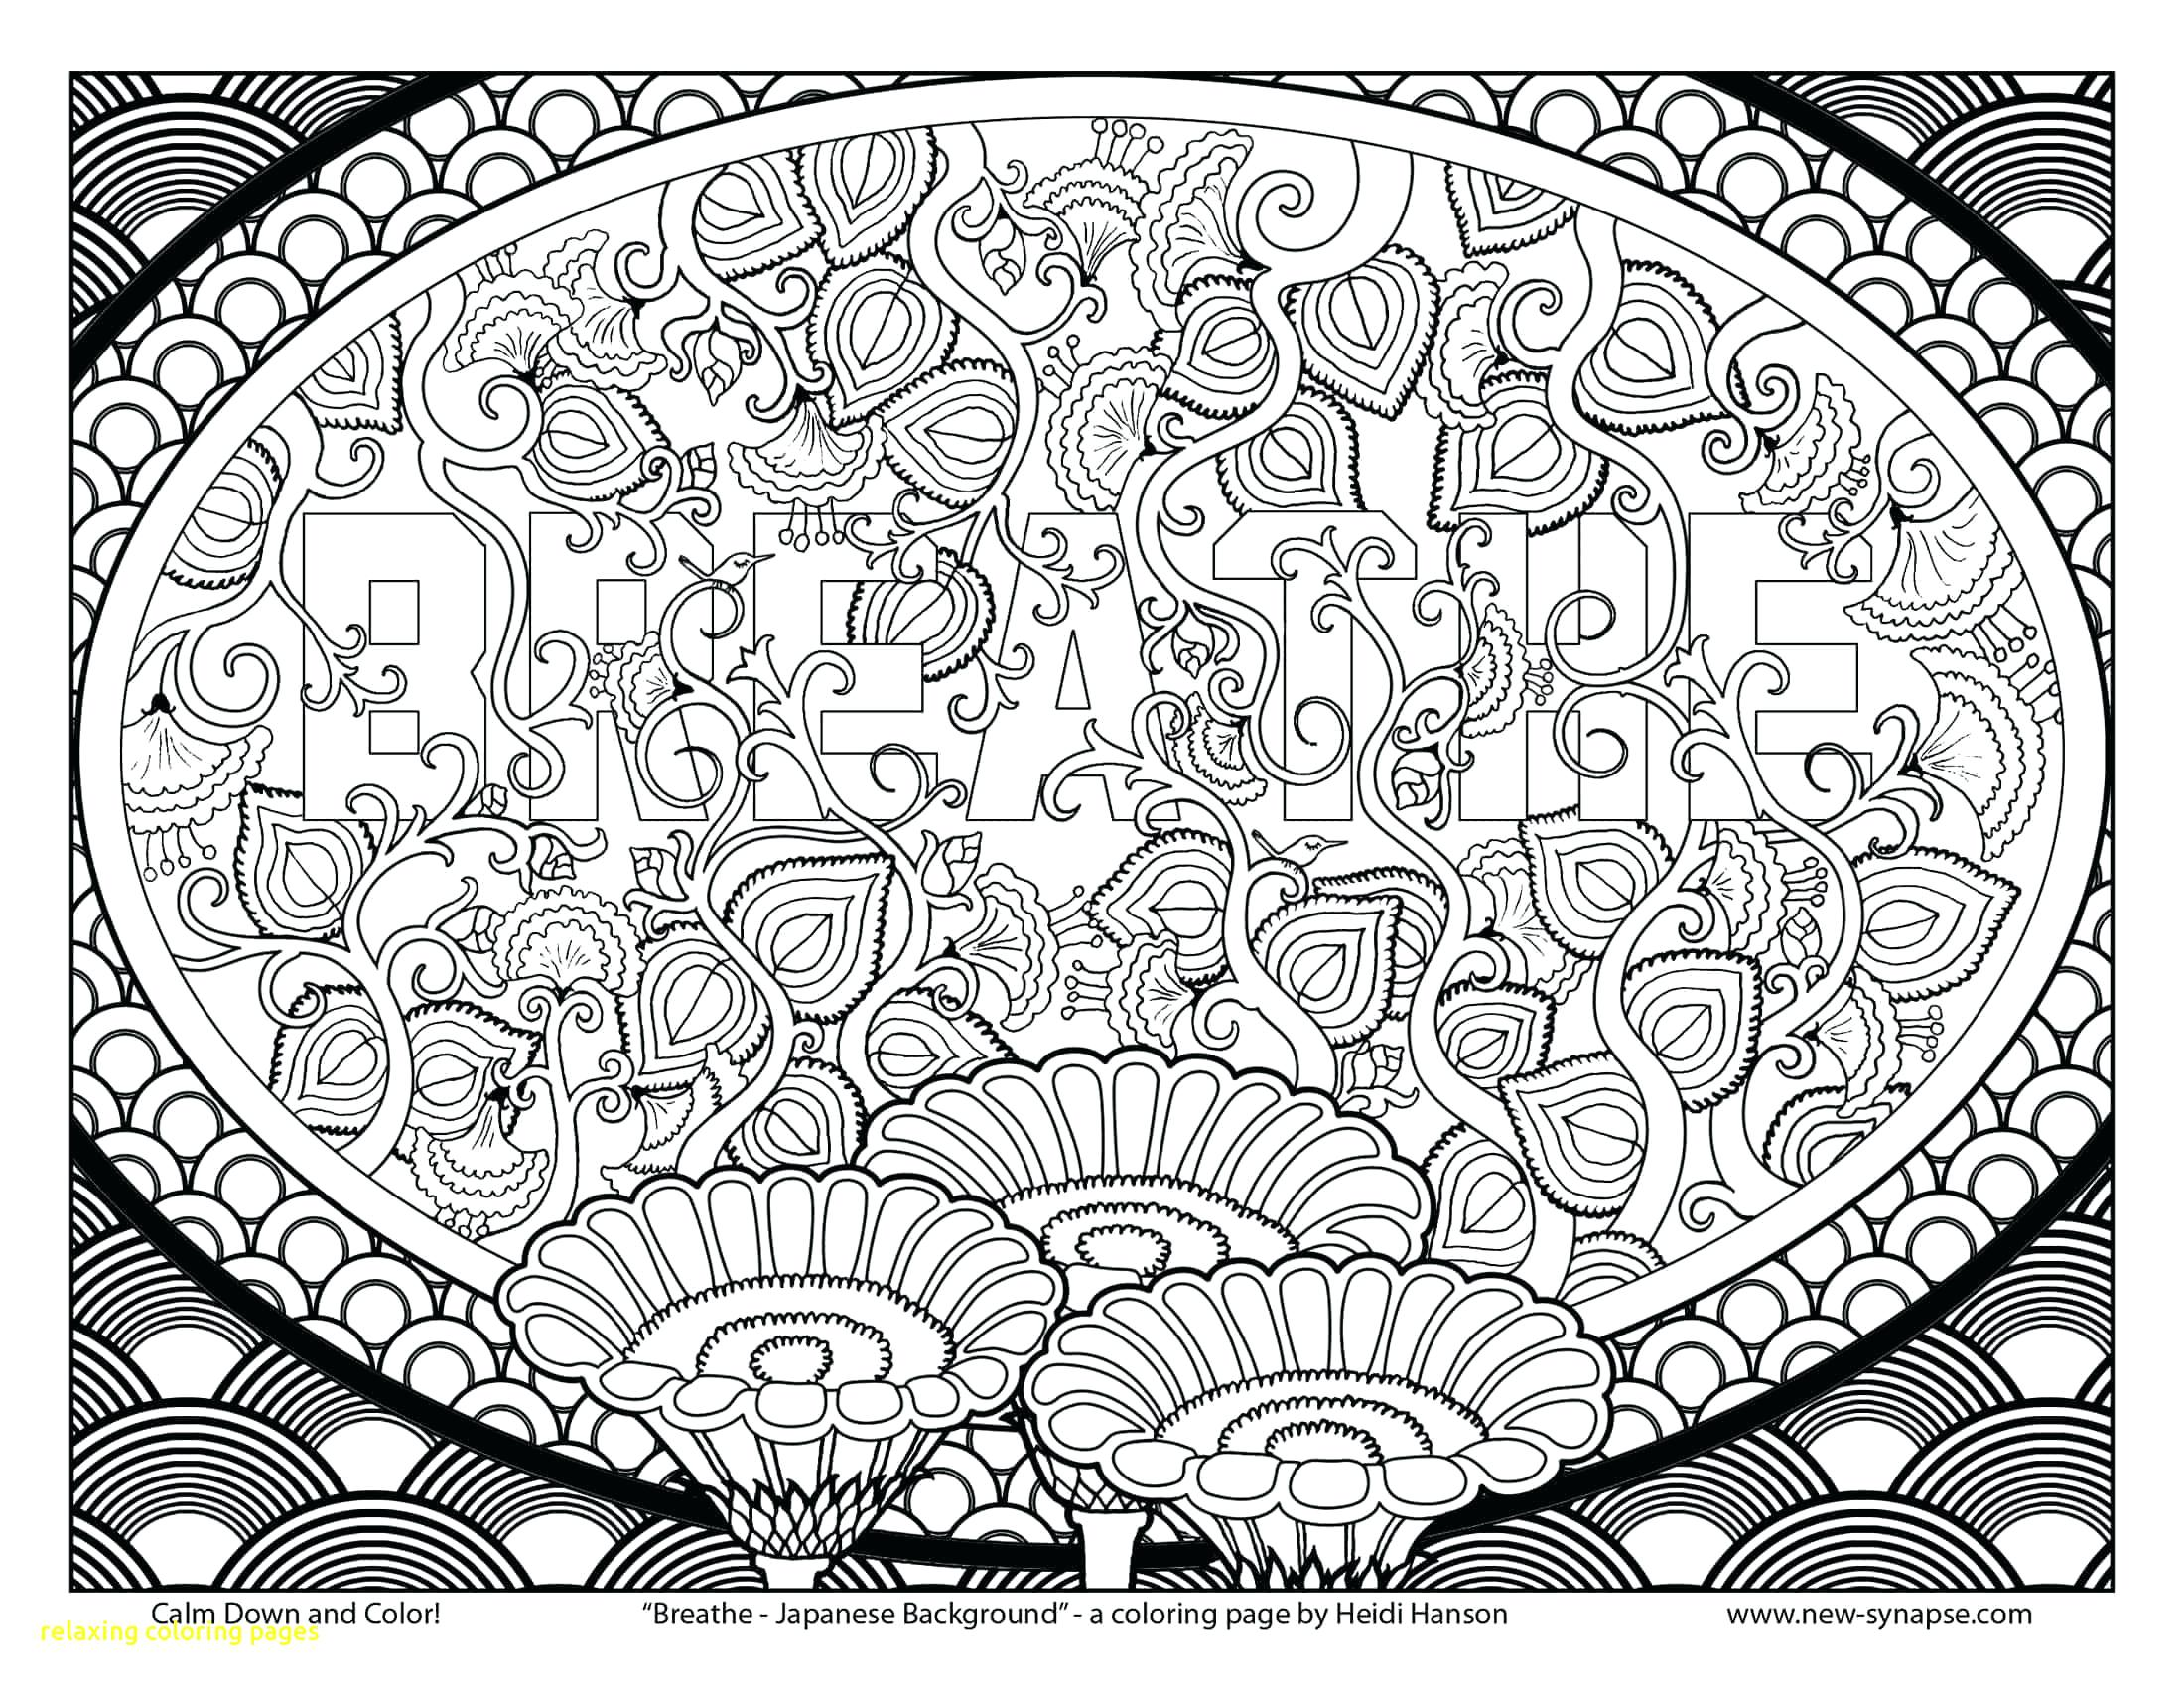 2200x1700 Free Mandala Coloring Pages To Print Relaxing With For Anxiety